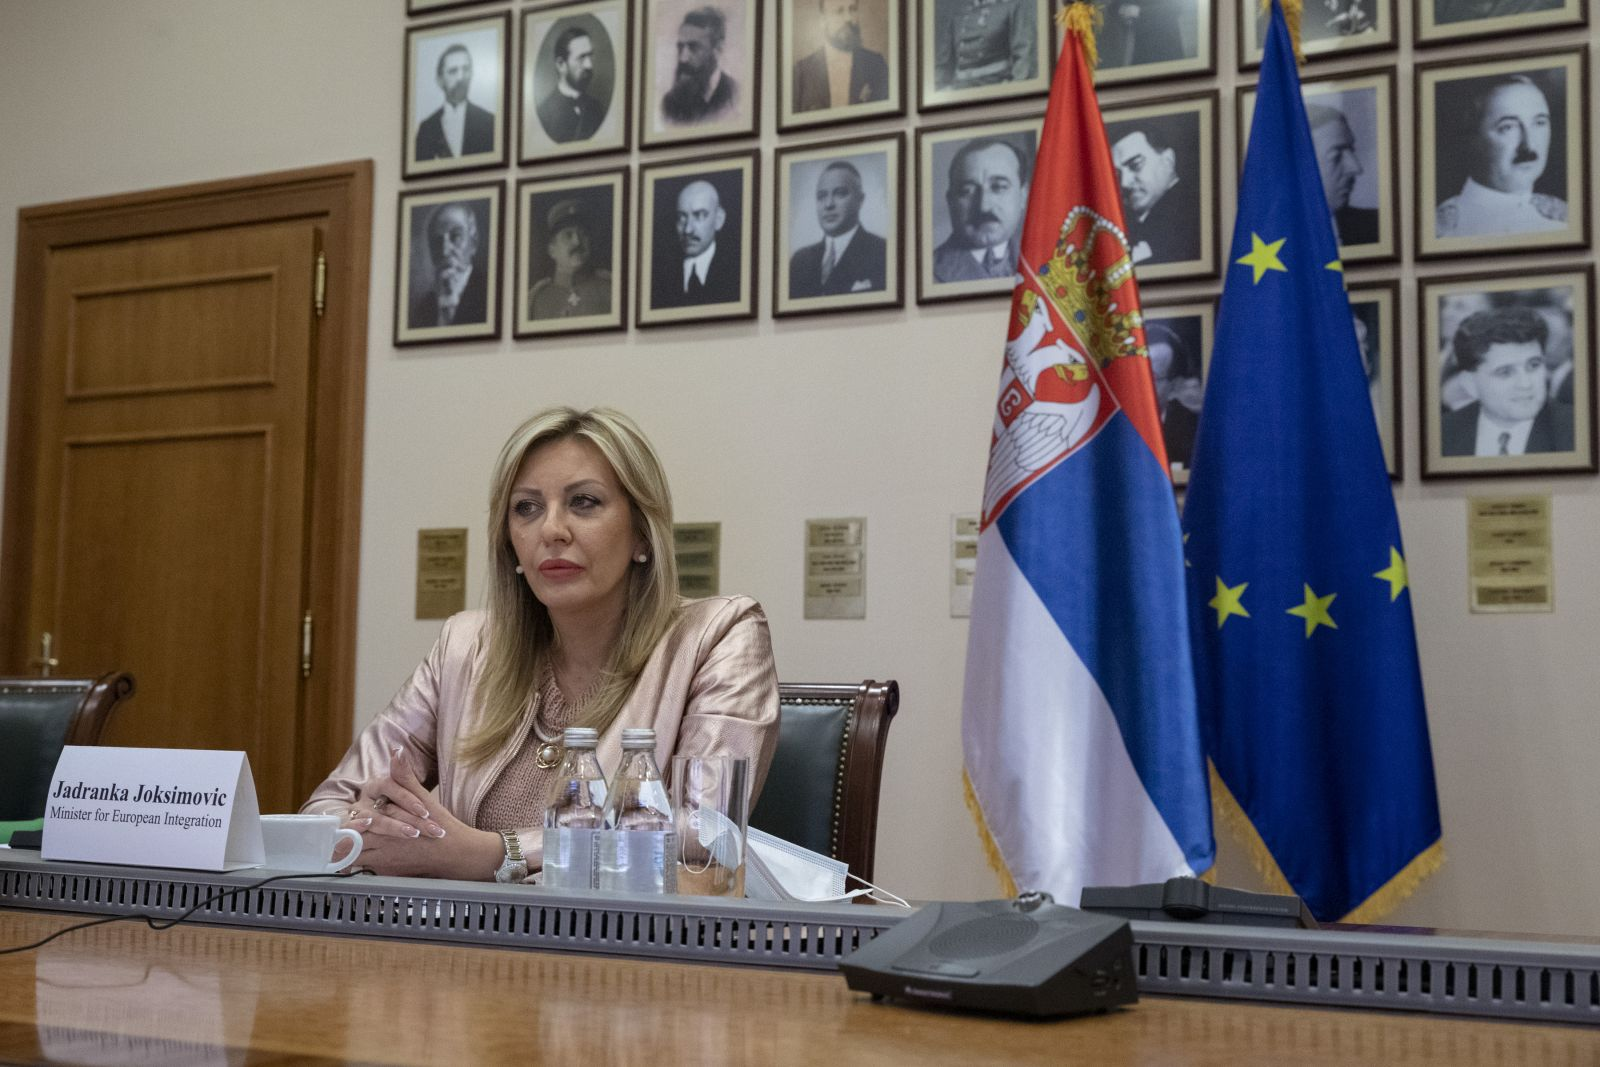 J. Joksimović, Várhelyi and WB ministers on Economic and Investment Plan